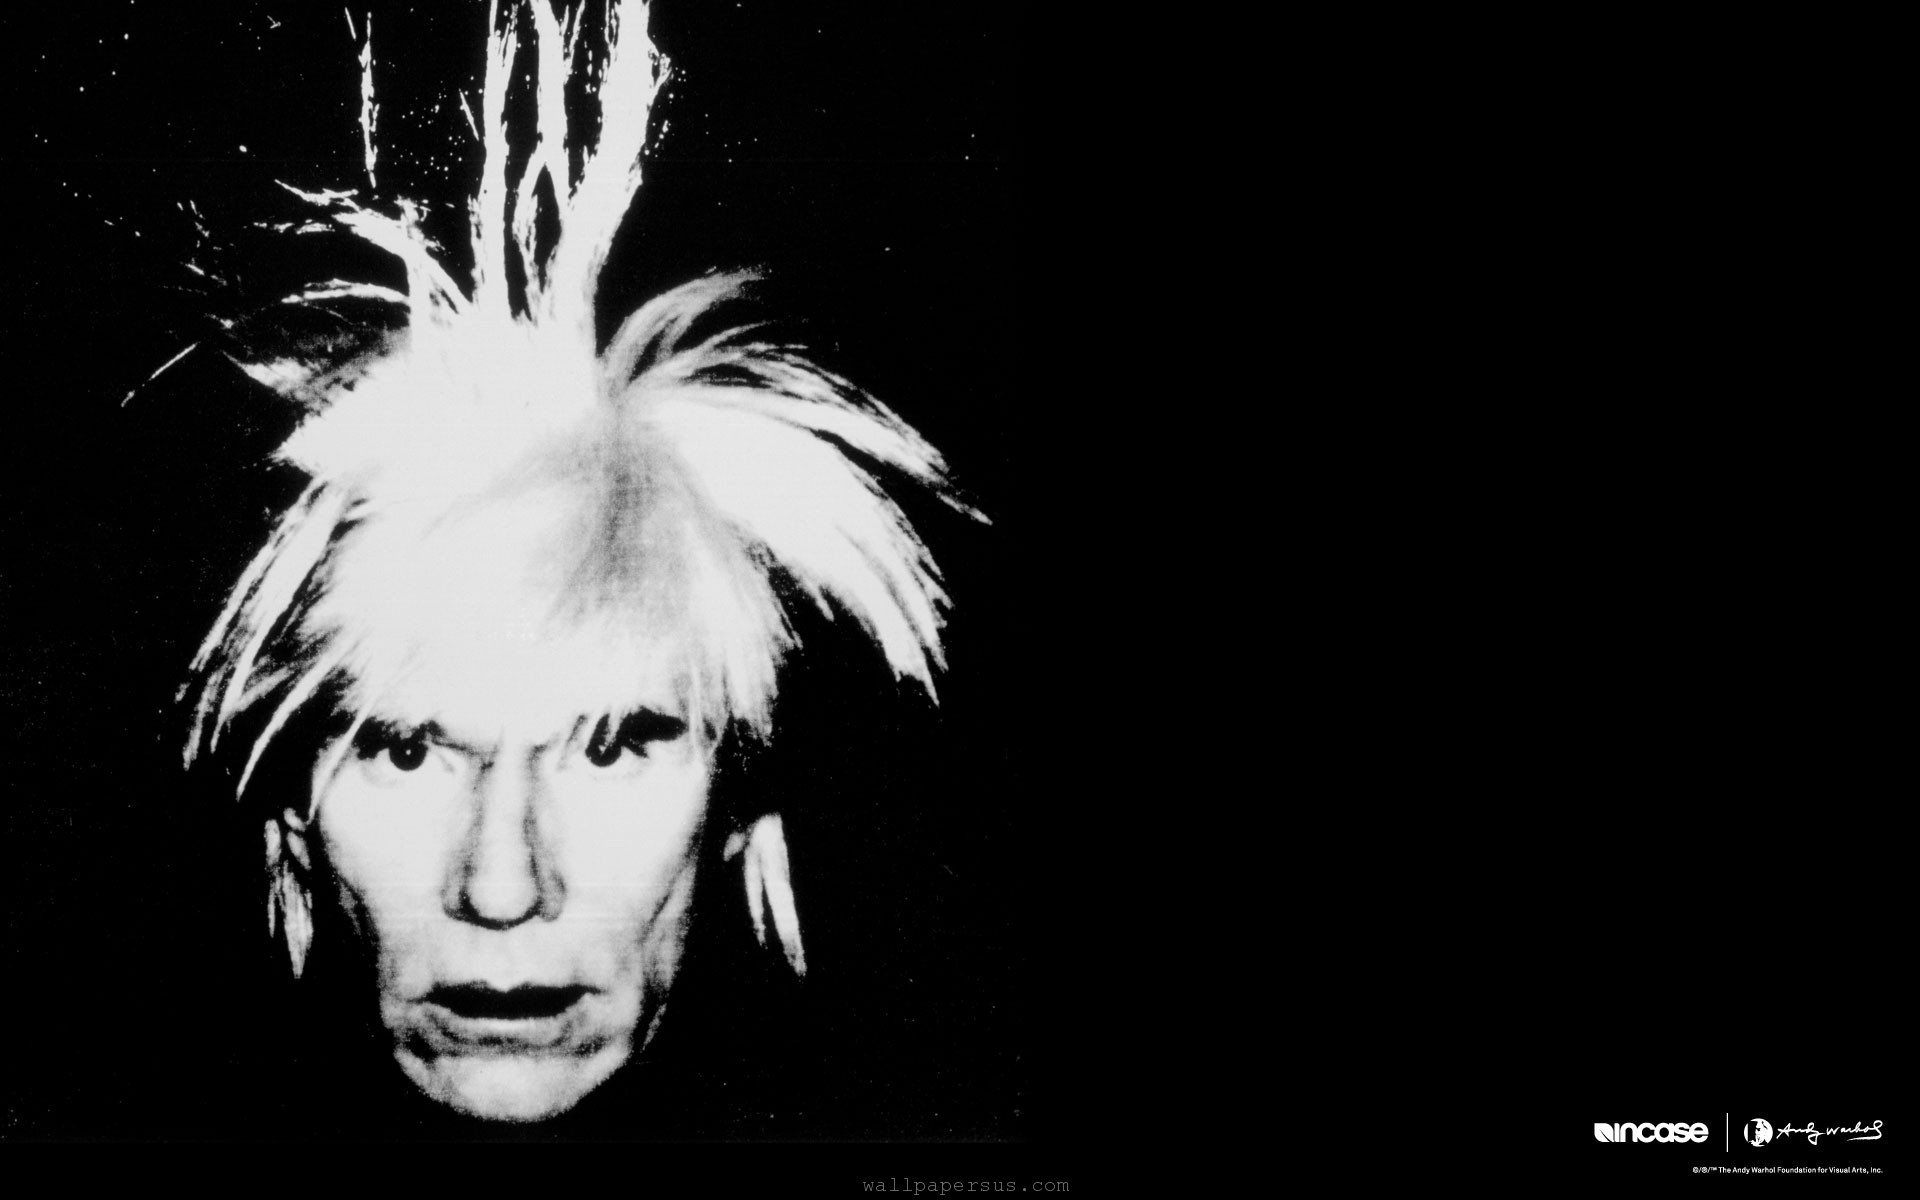 HD Wallpaper of Portrait Grayscale Andy Warhol Incase, Desktop Wallpaper Portrait Grayscale Andy Warhol Incase